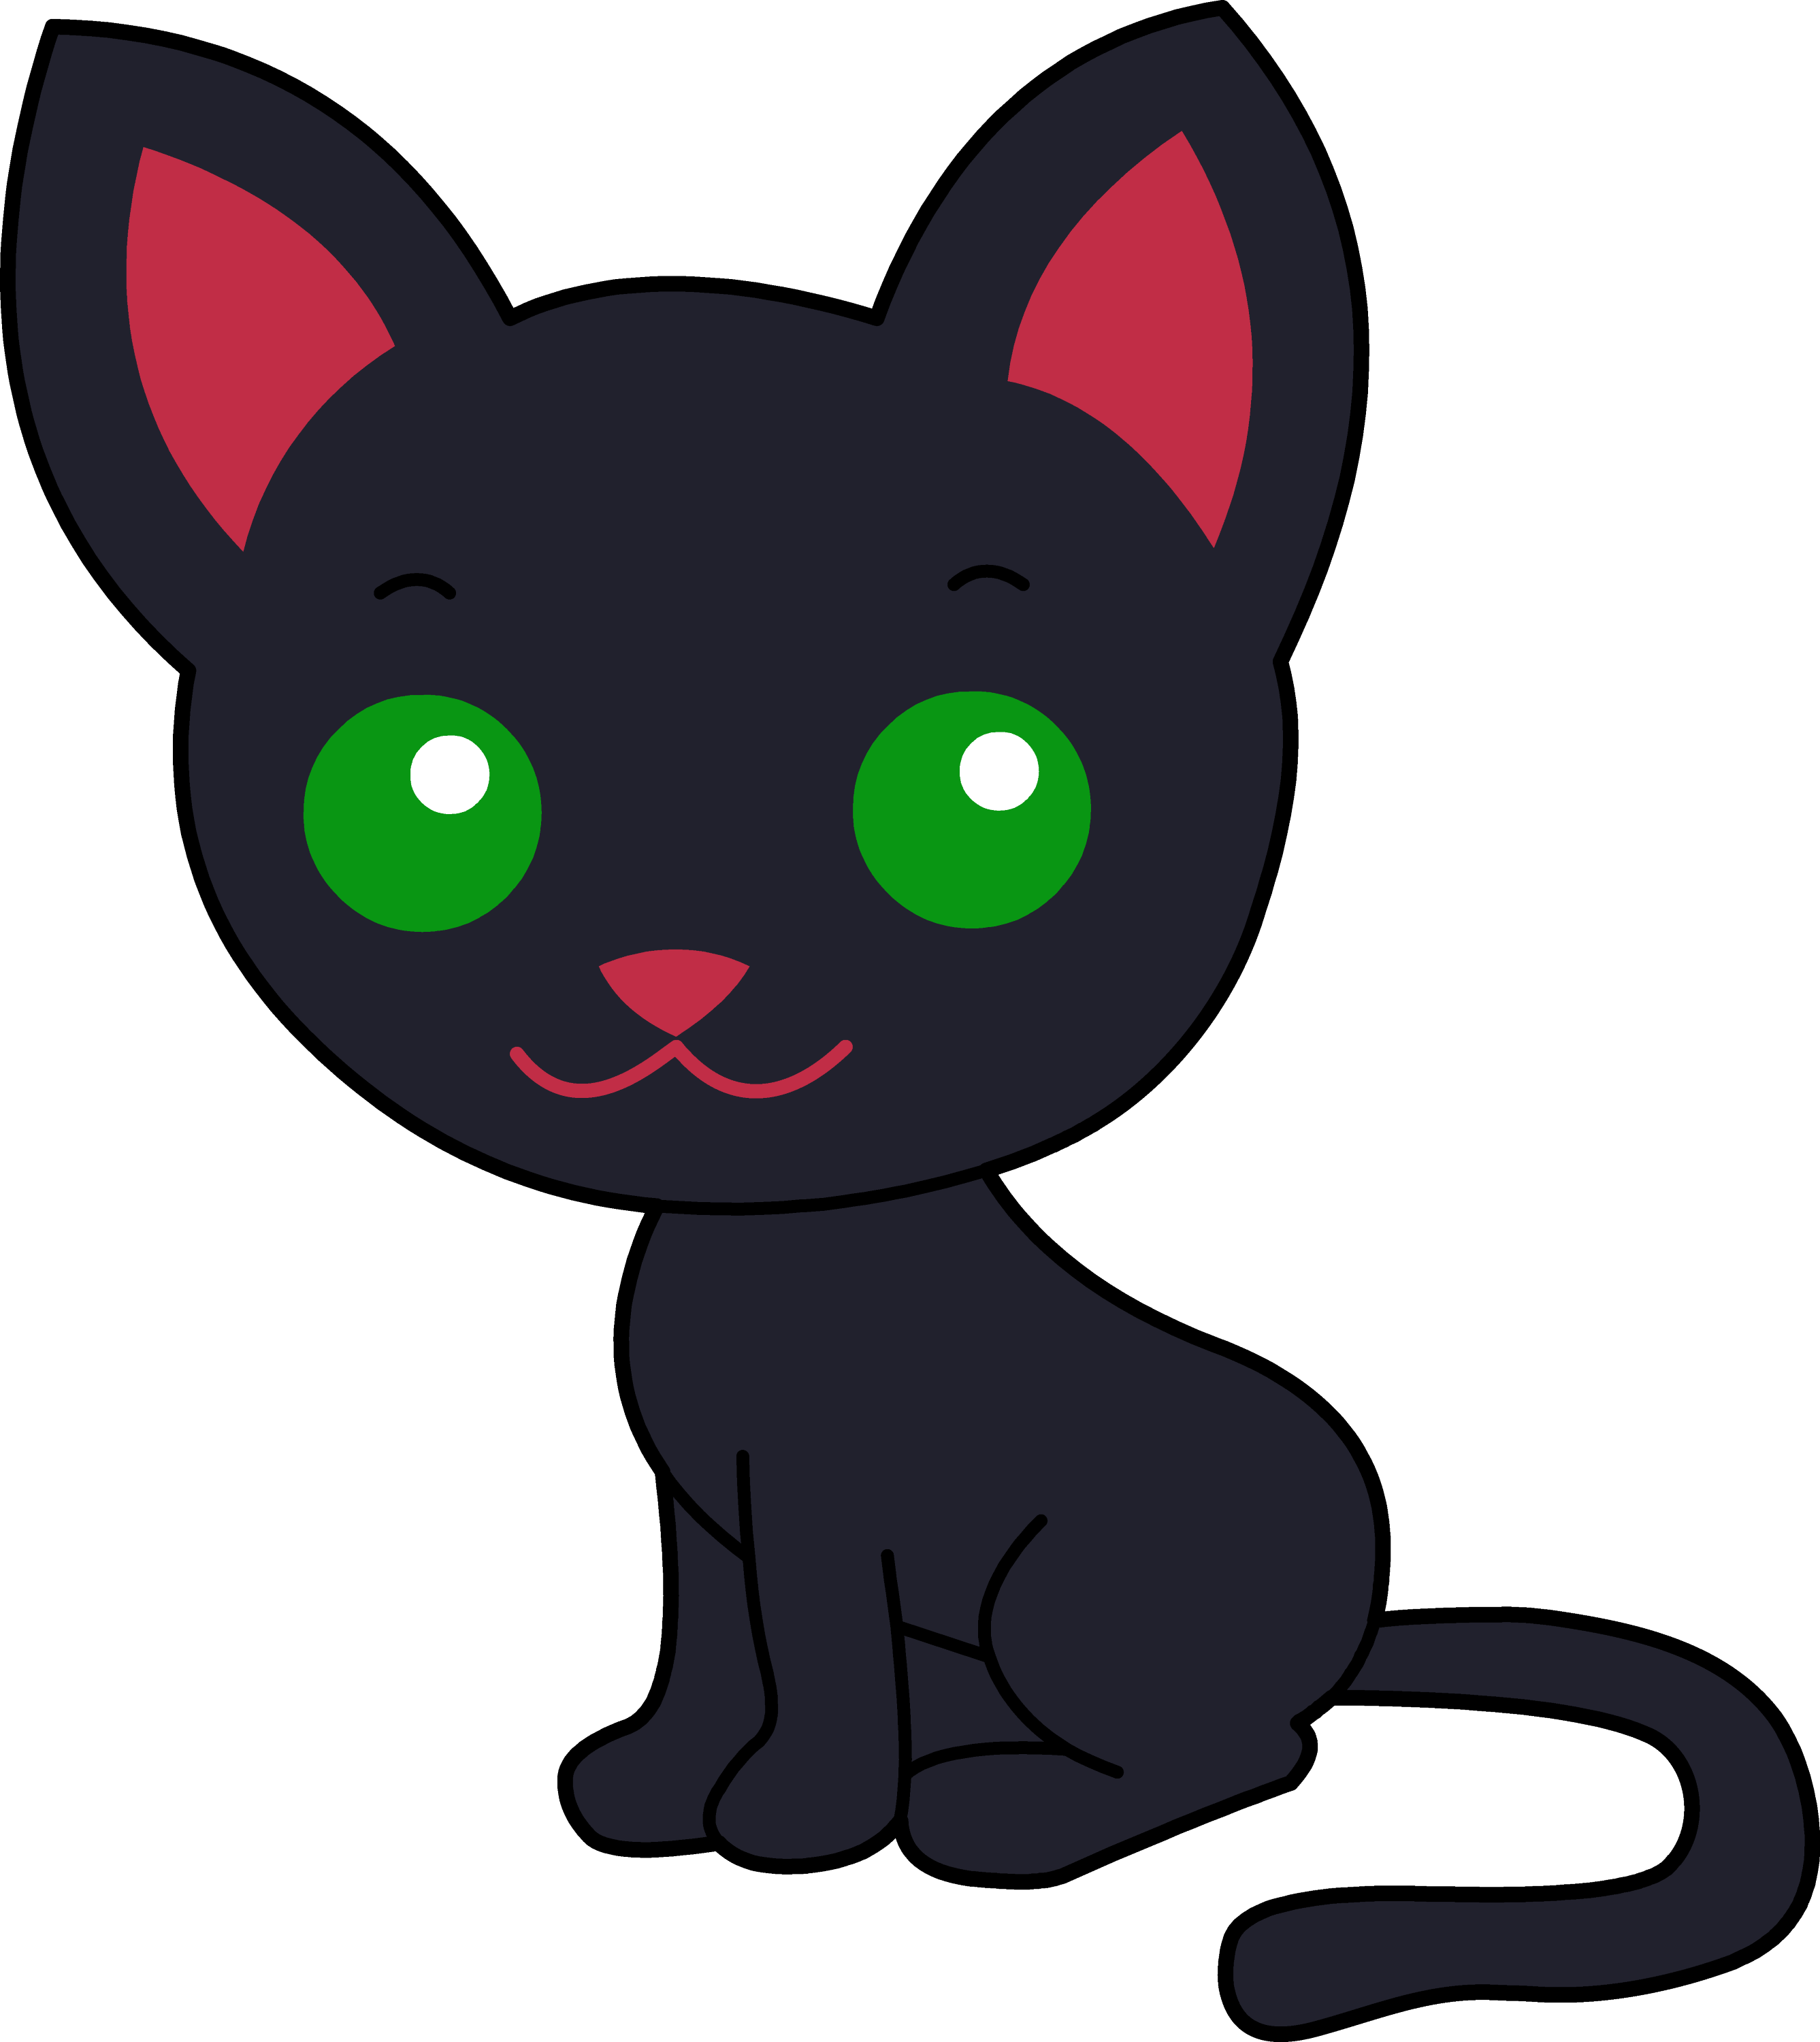 Cute Black Kitty Cat - Free Clip Art